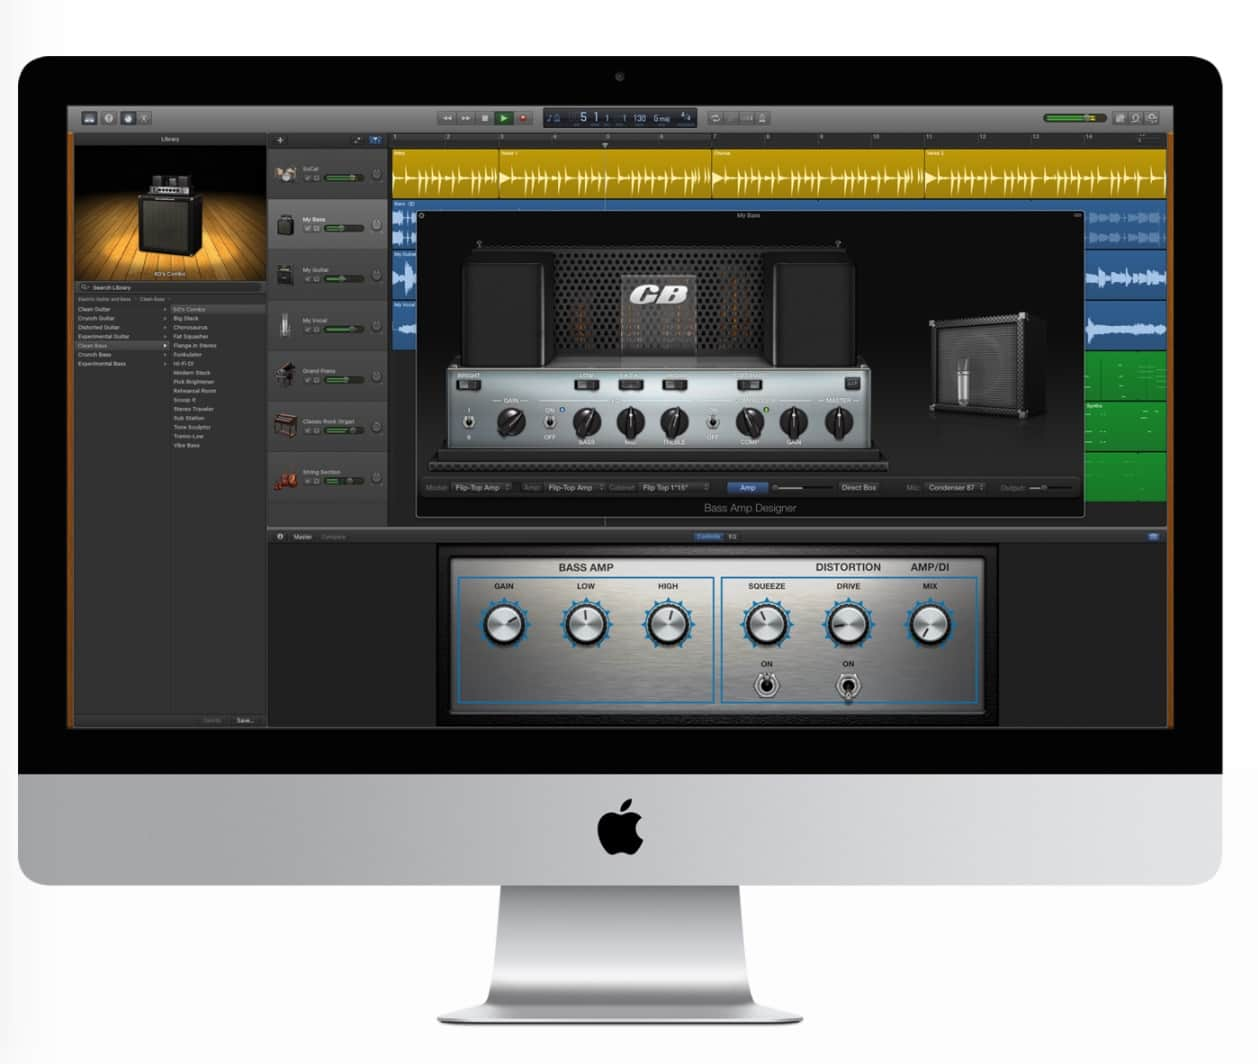 You no longer need to buy a new Mac to get GarageBand for free.